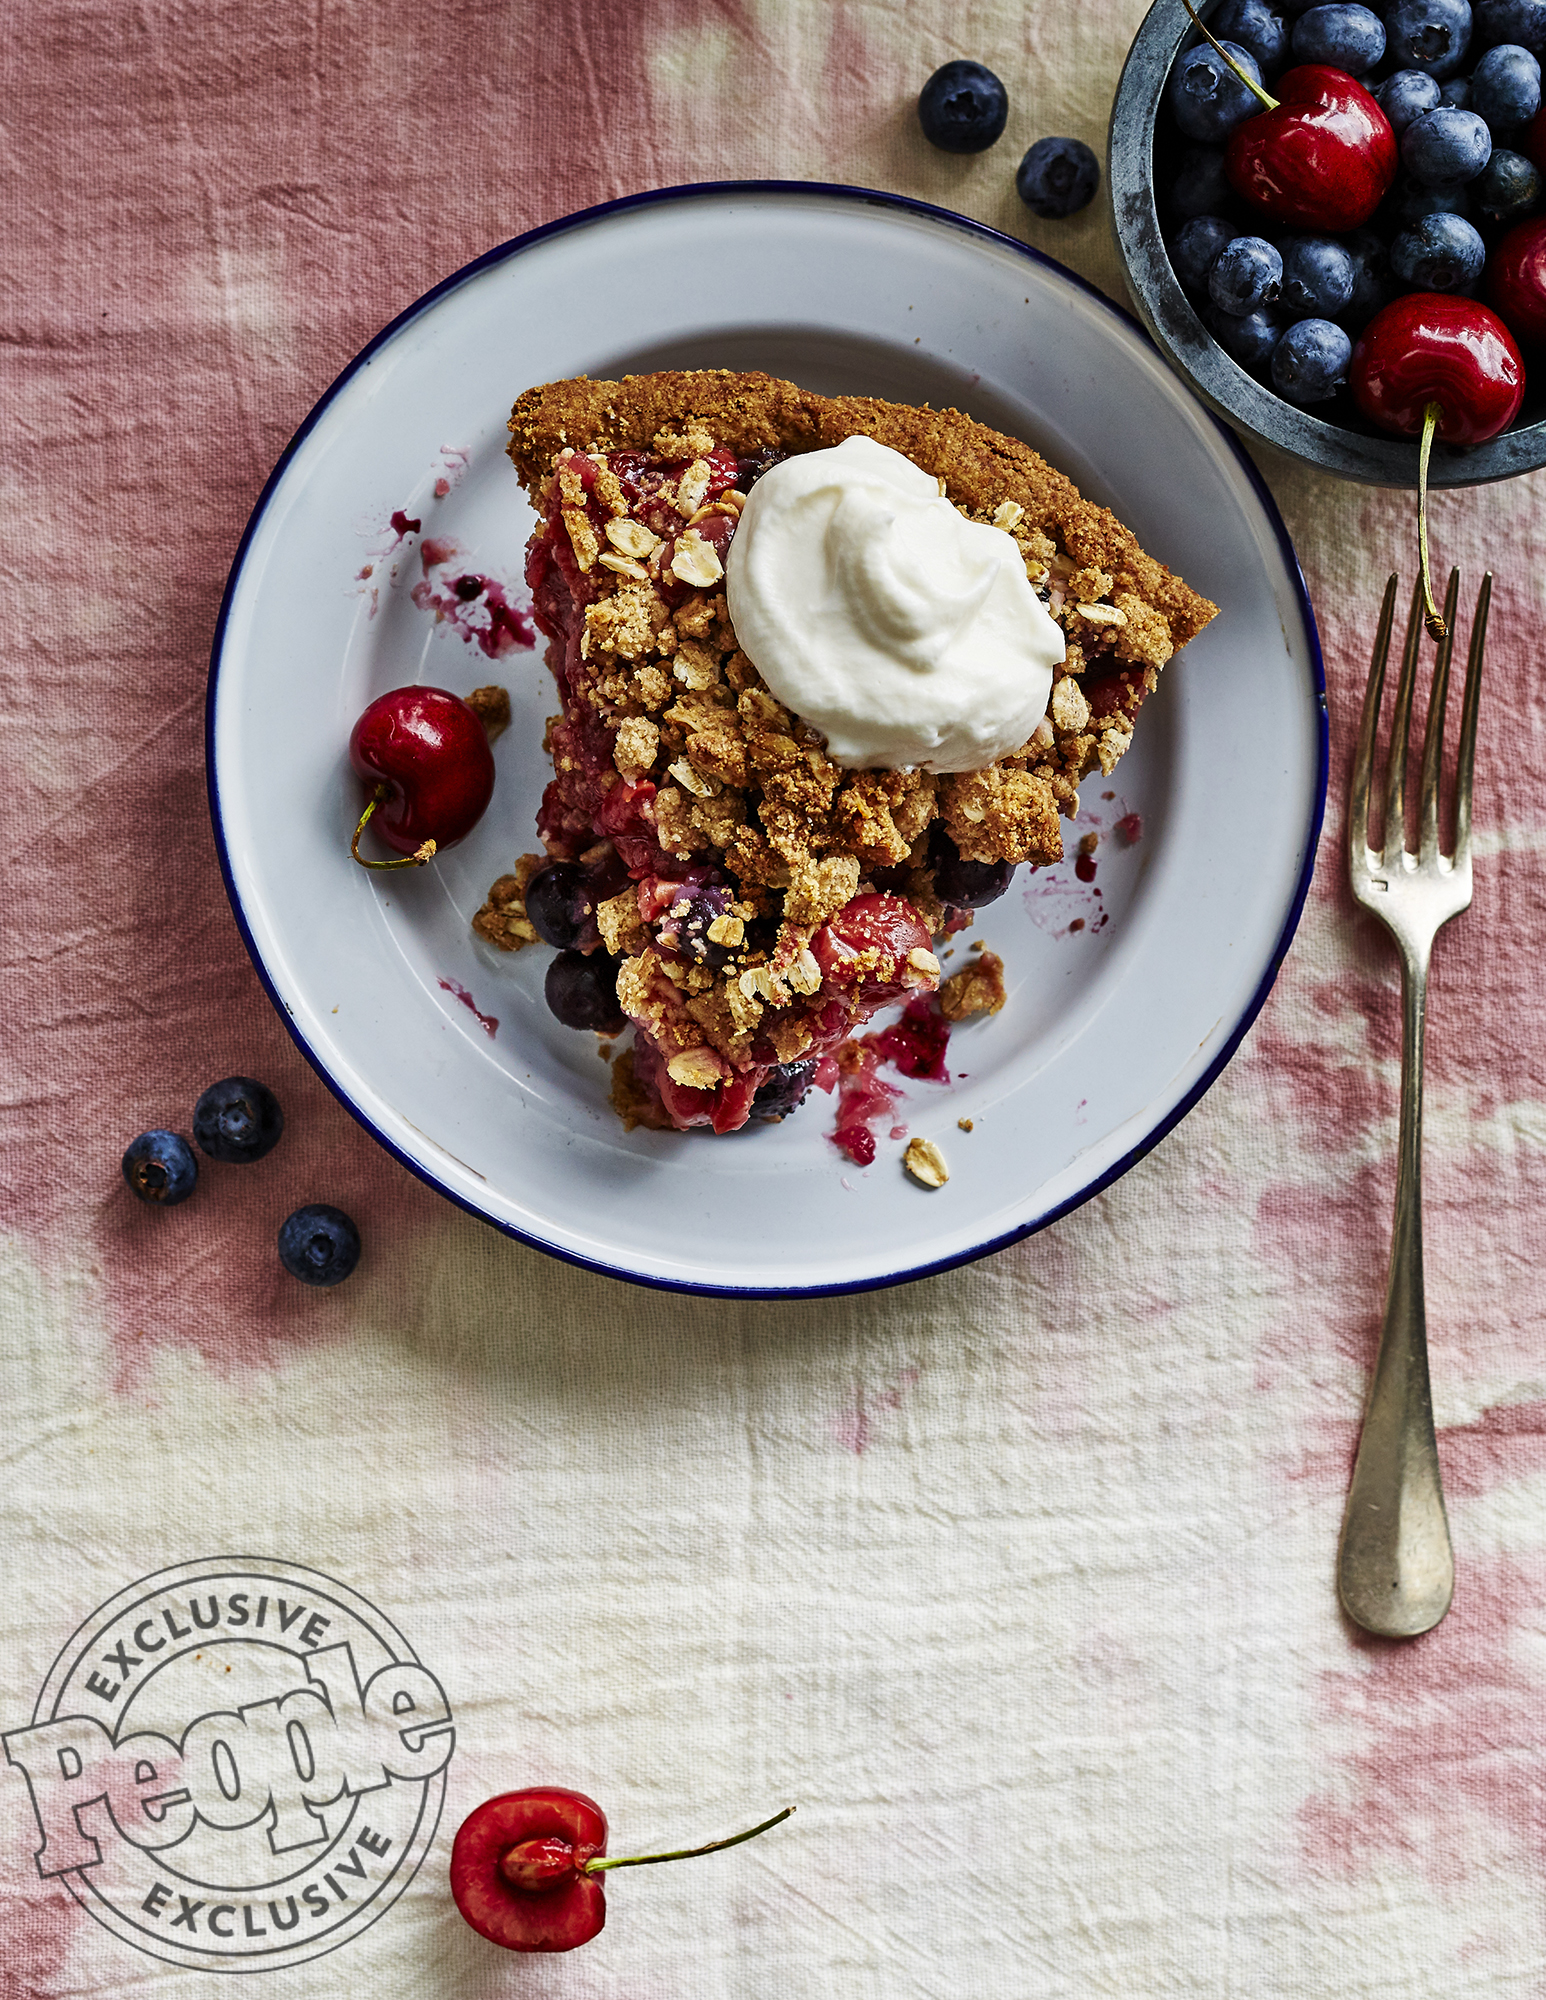 F:PHOTOReady RoomActionsInsert Request47752#Victor ProtasioPeopleFood_BerryCobbler_05.jpg